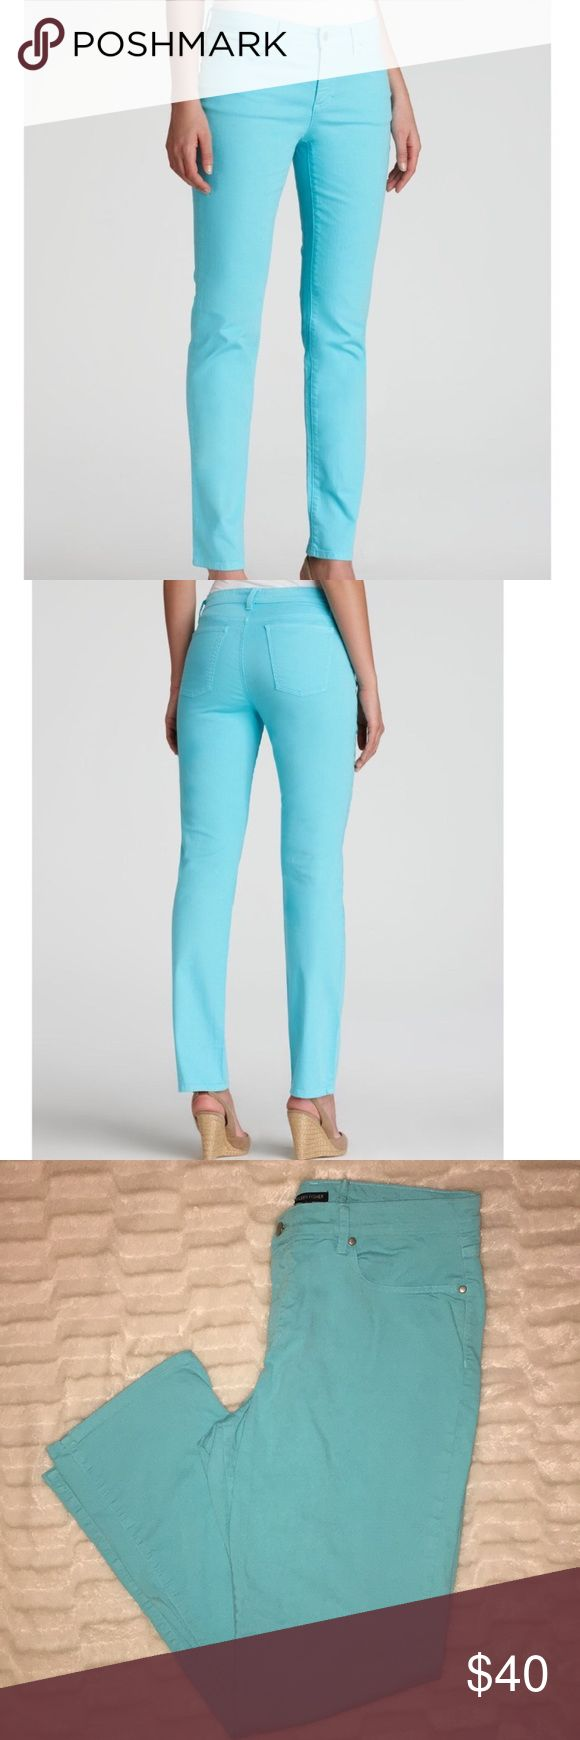 Eileen Fisher organic cotton deep aqua jeans 16 These have been taken in at the back of the waist with 2, 1/2 inch stitches . The stitch CAN be taken out if you need it to be. High quality high end jeans in a pretty unique color!! Eileen Fisher Jeans